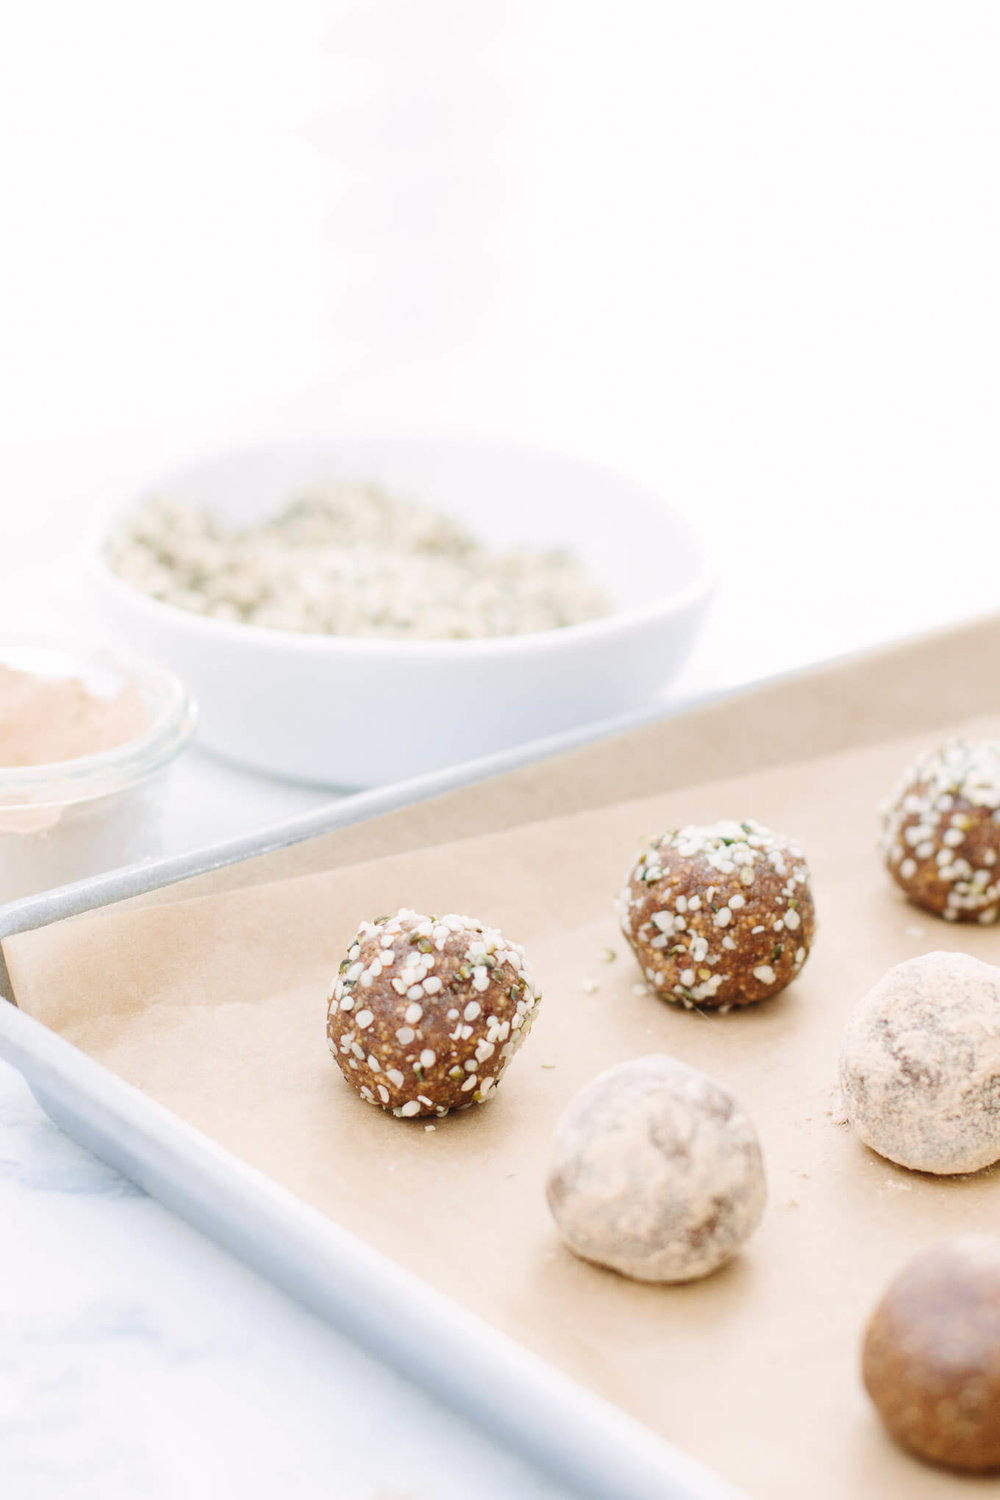 Adaptogen-Snack-Balls-14-of-16.jpg